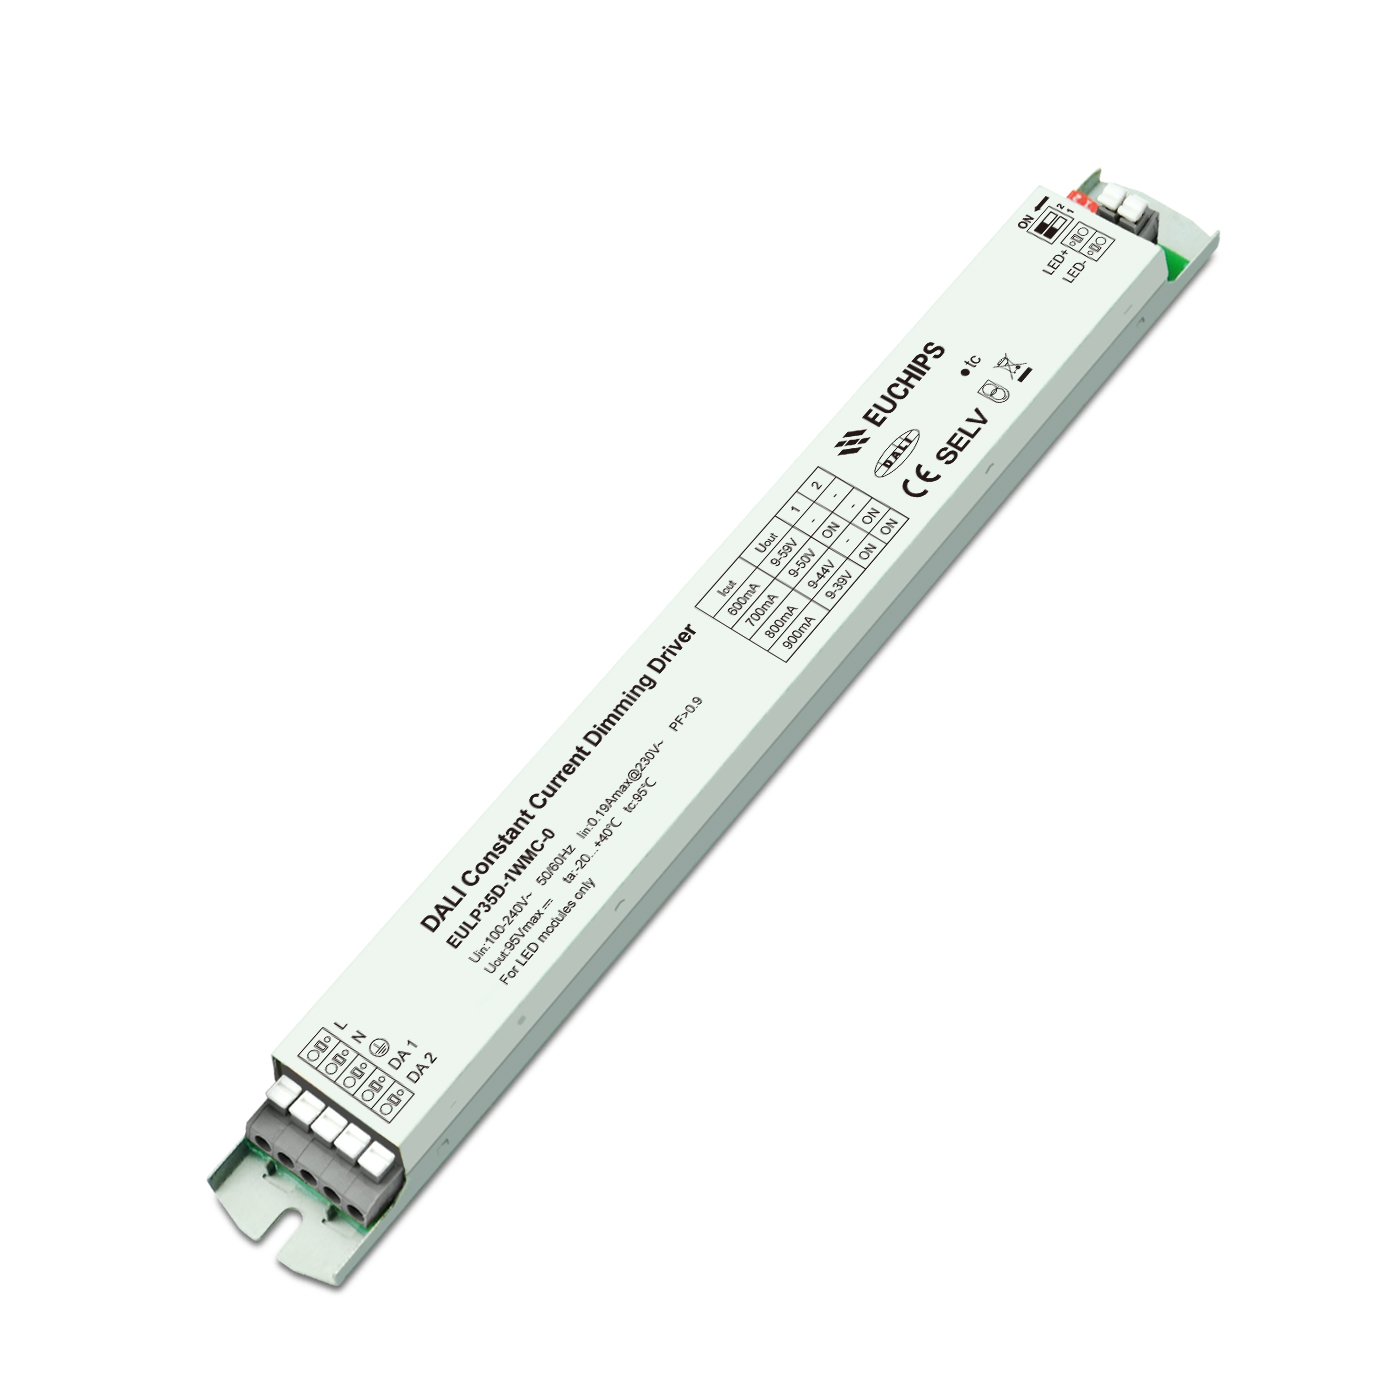 One of Hottest for 24 Channels Dmx512 Dimmer -